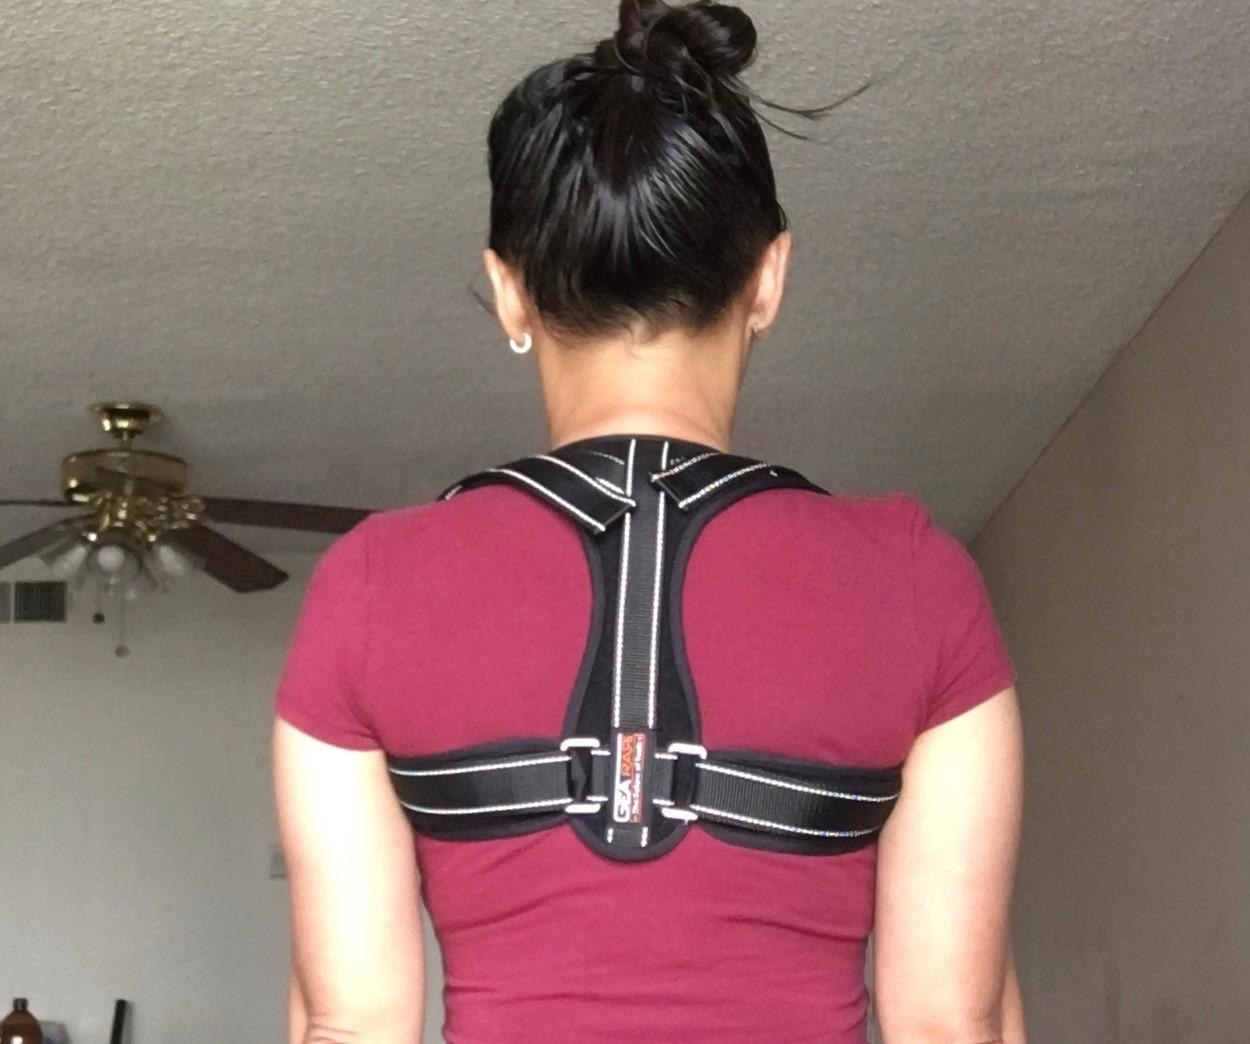 Reviewer wearing the brace over their shirt